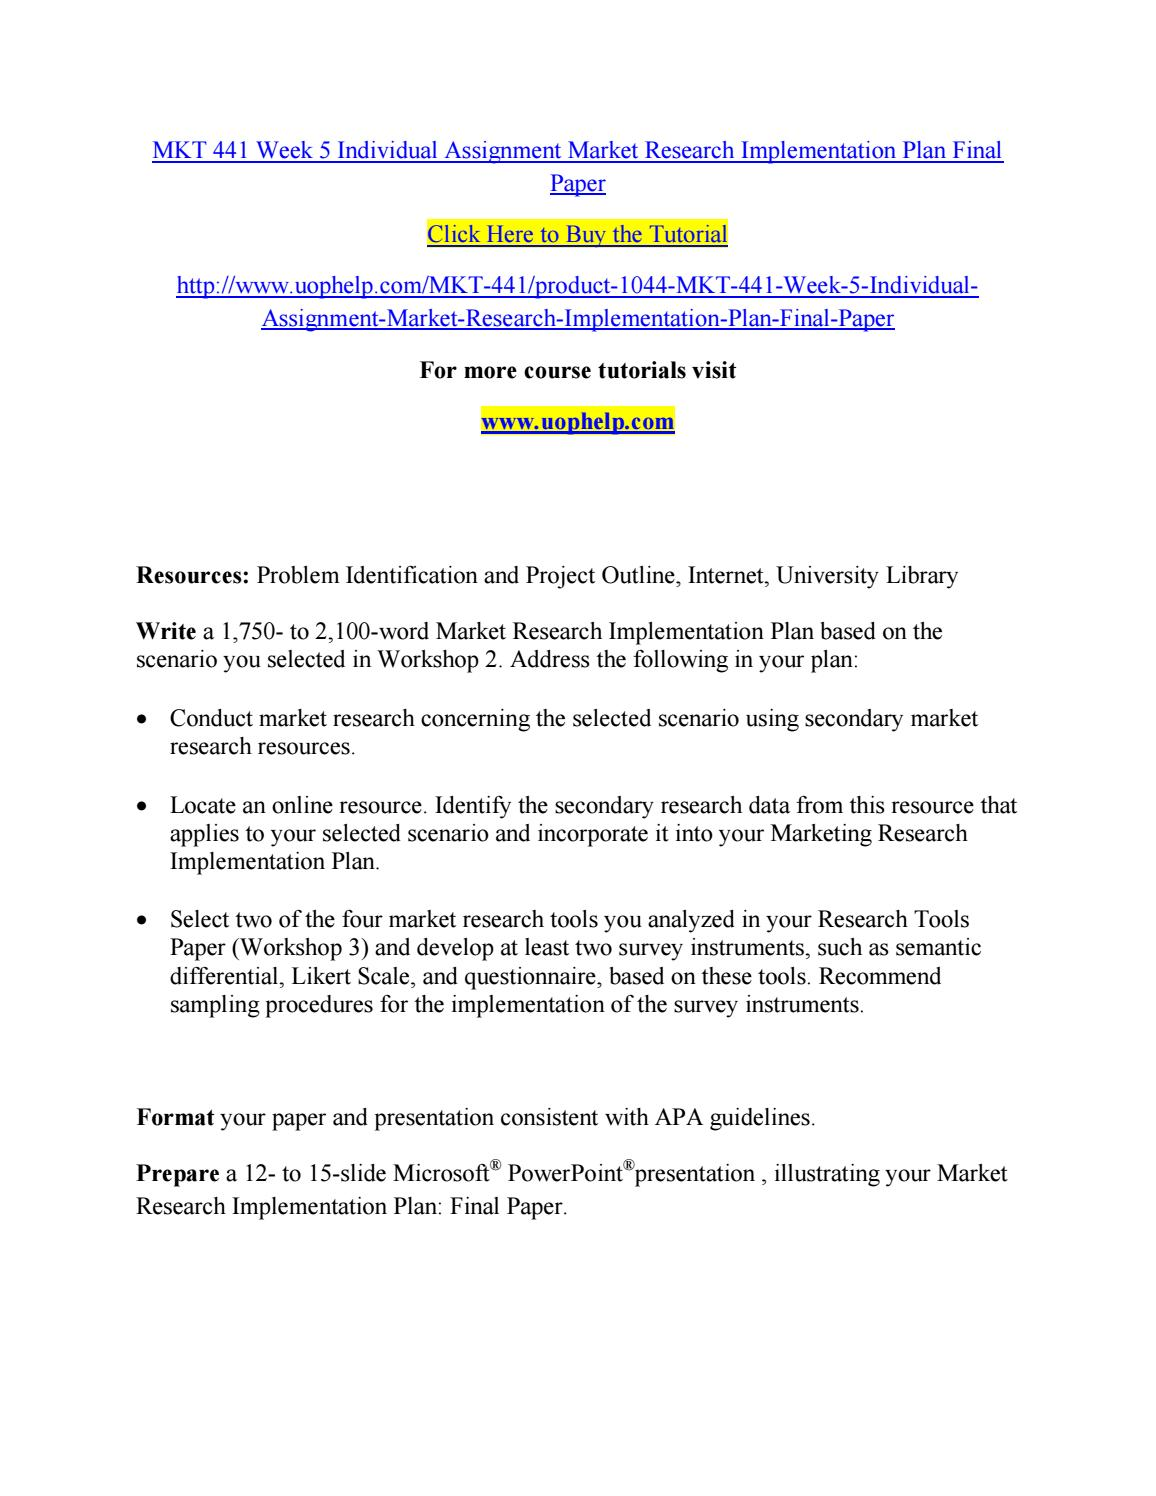 Essay Style Paper  How To Write A Thesis Statement For An Essay also Harvard Business School Essay Argumentative Essay Capital Punishment Should Be Abolished Fifth Business Essays